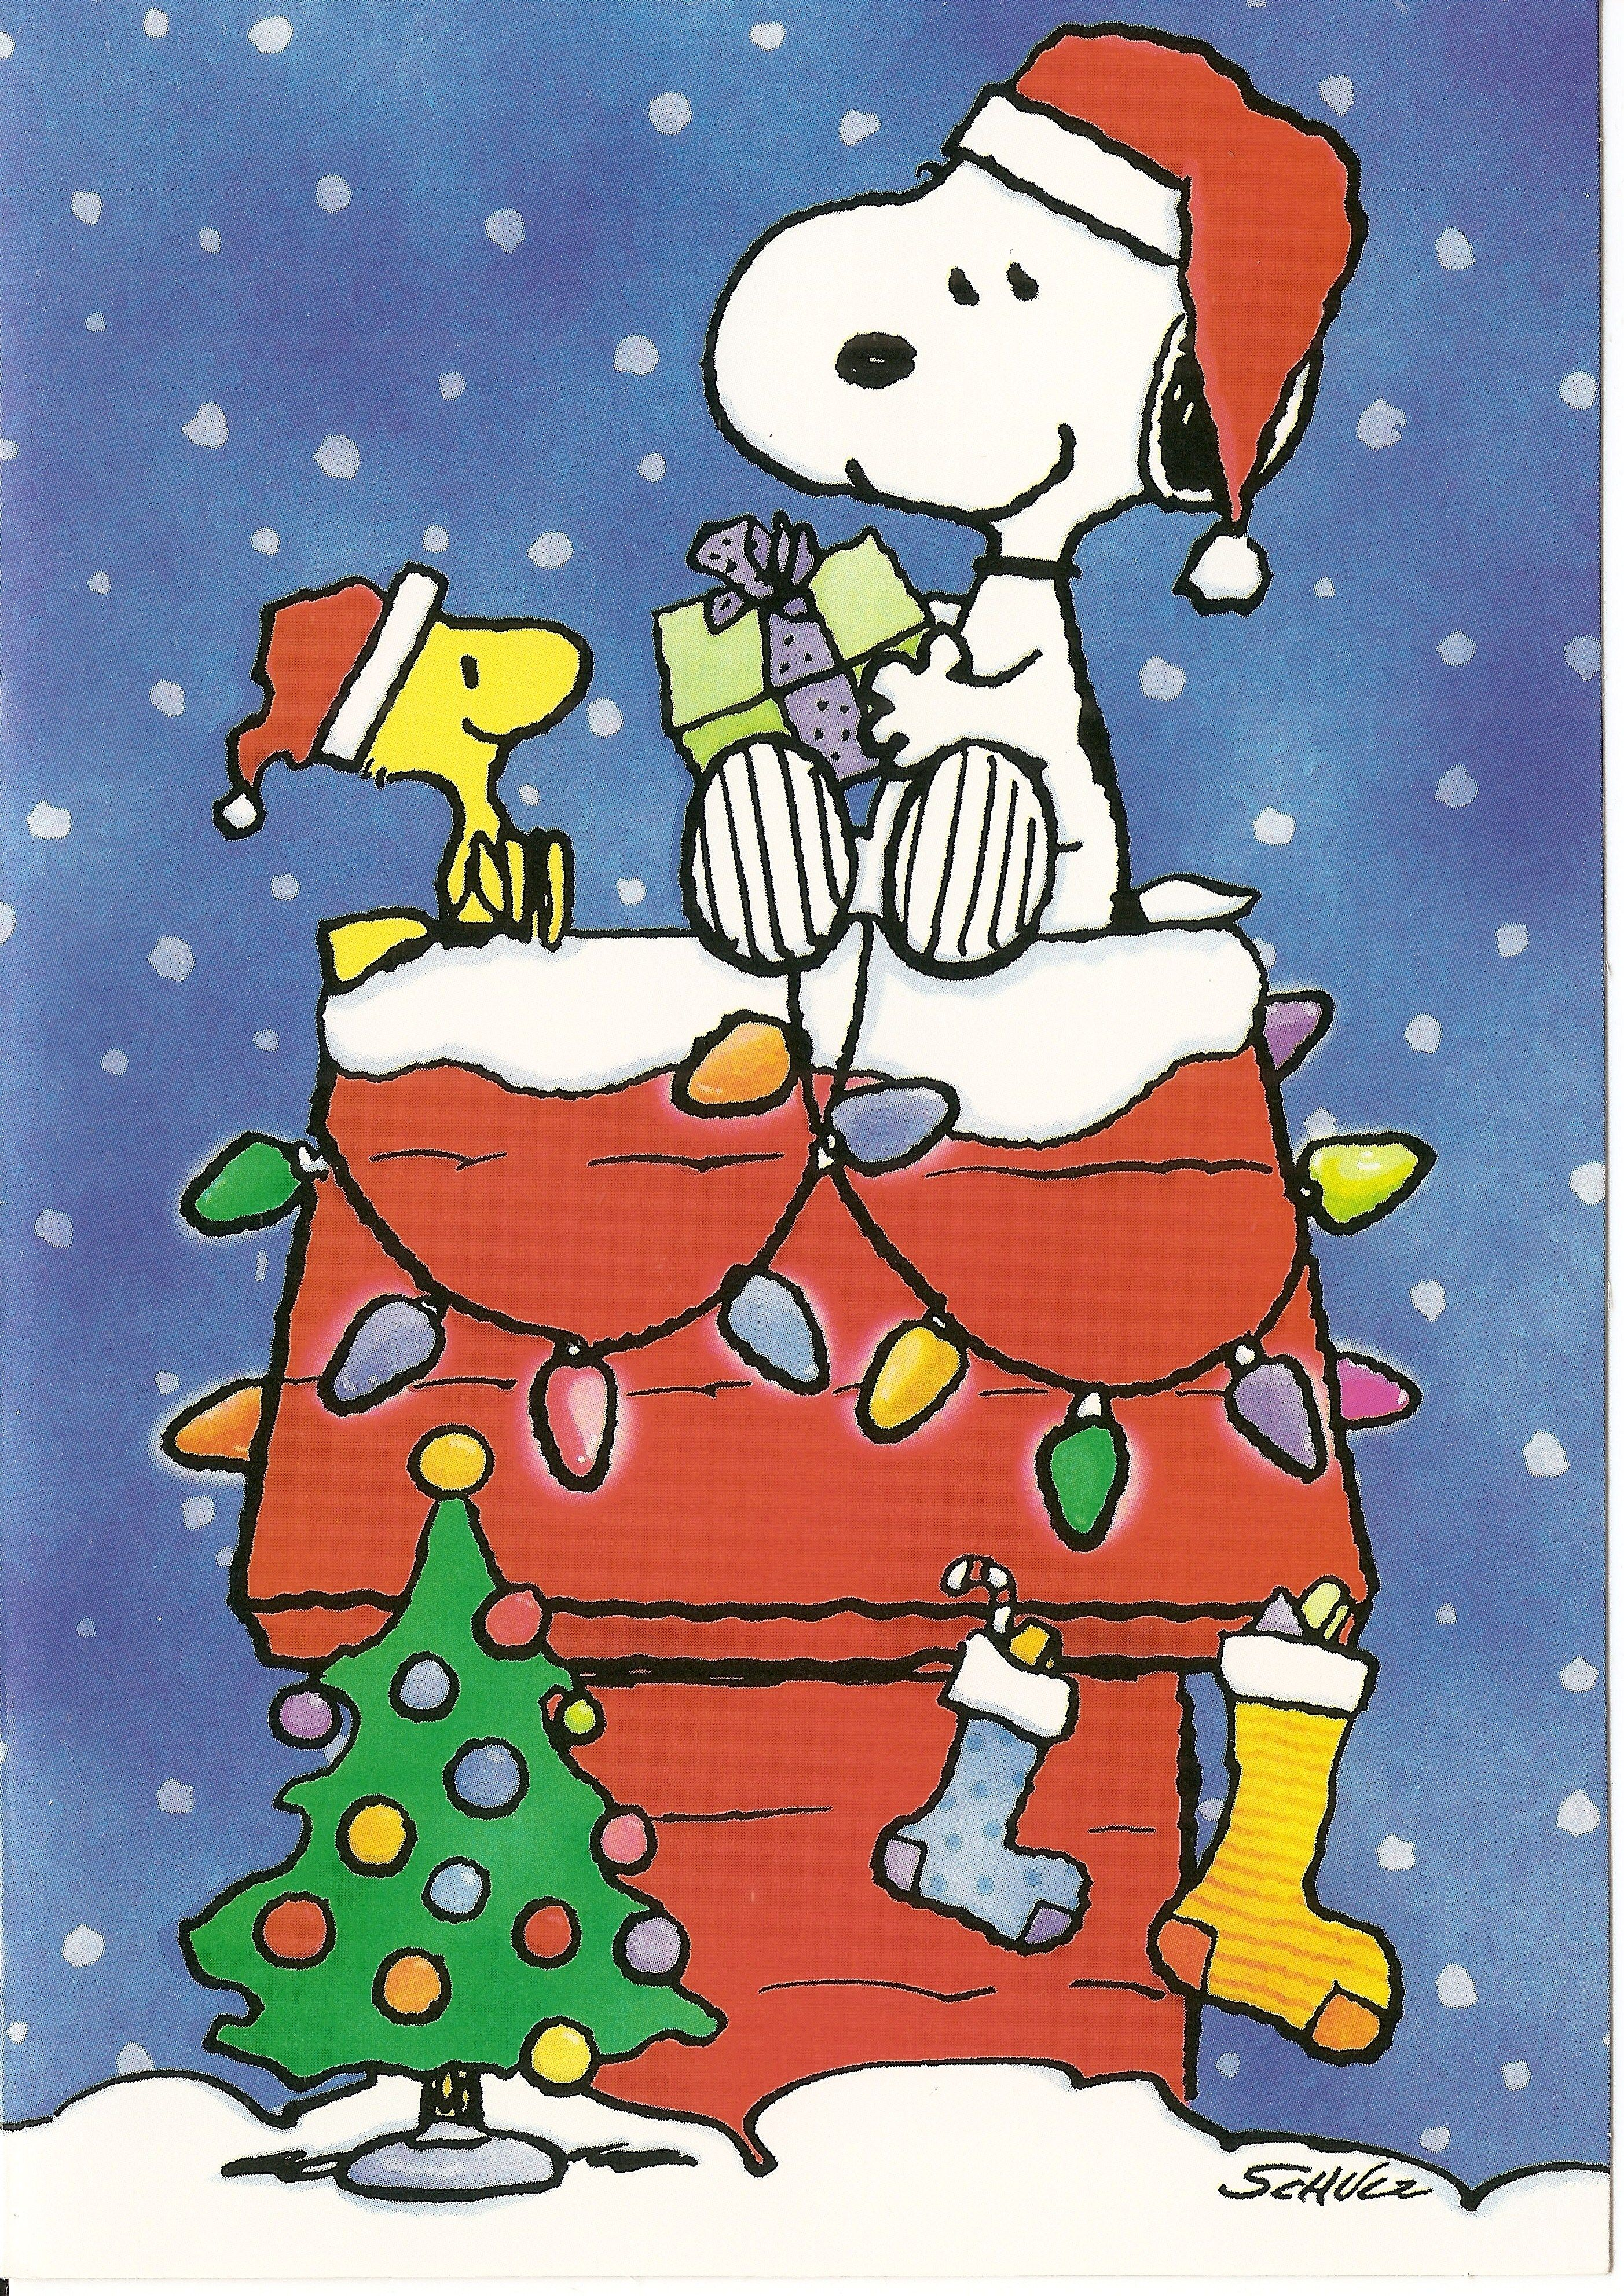 Snoopy | Christmas Cards | Pinterest | Snoopy, Snoopy christmas and ...